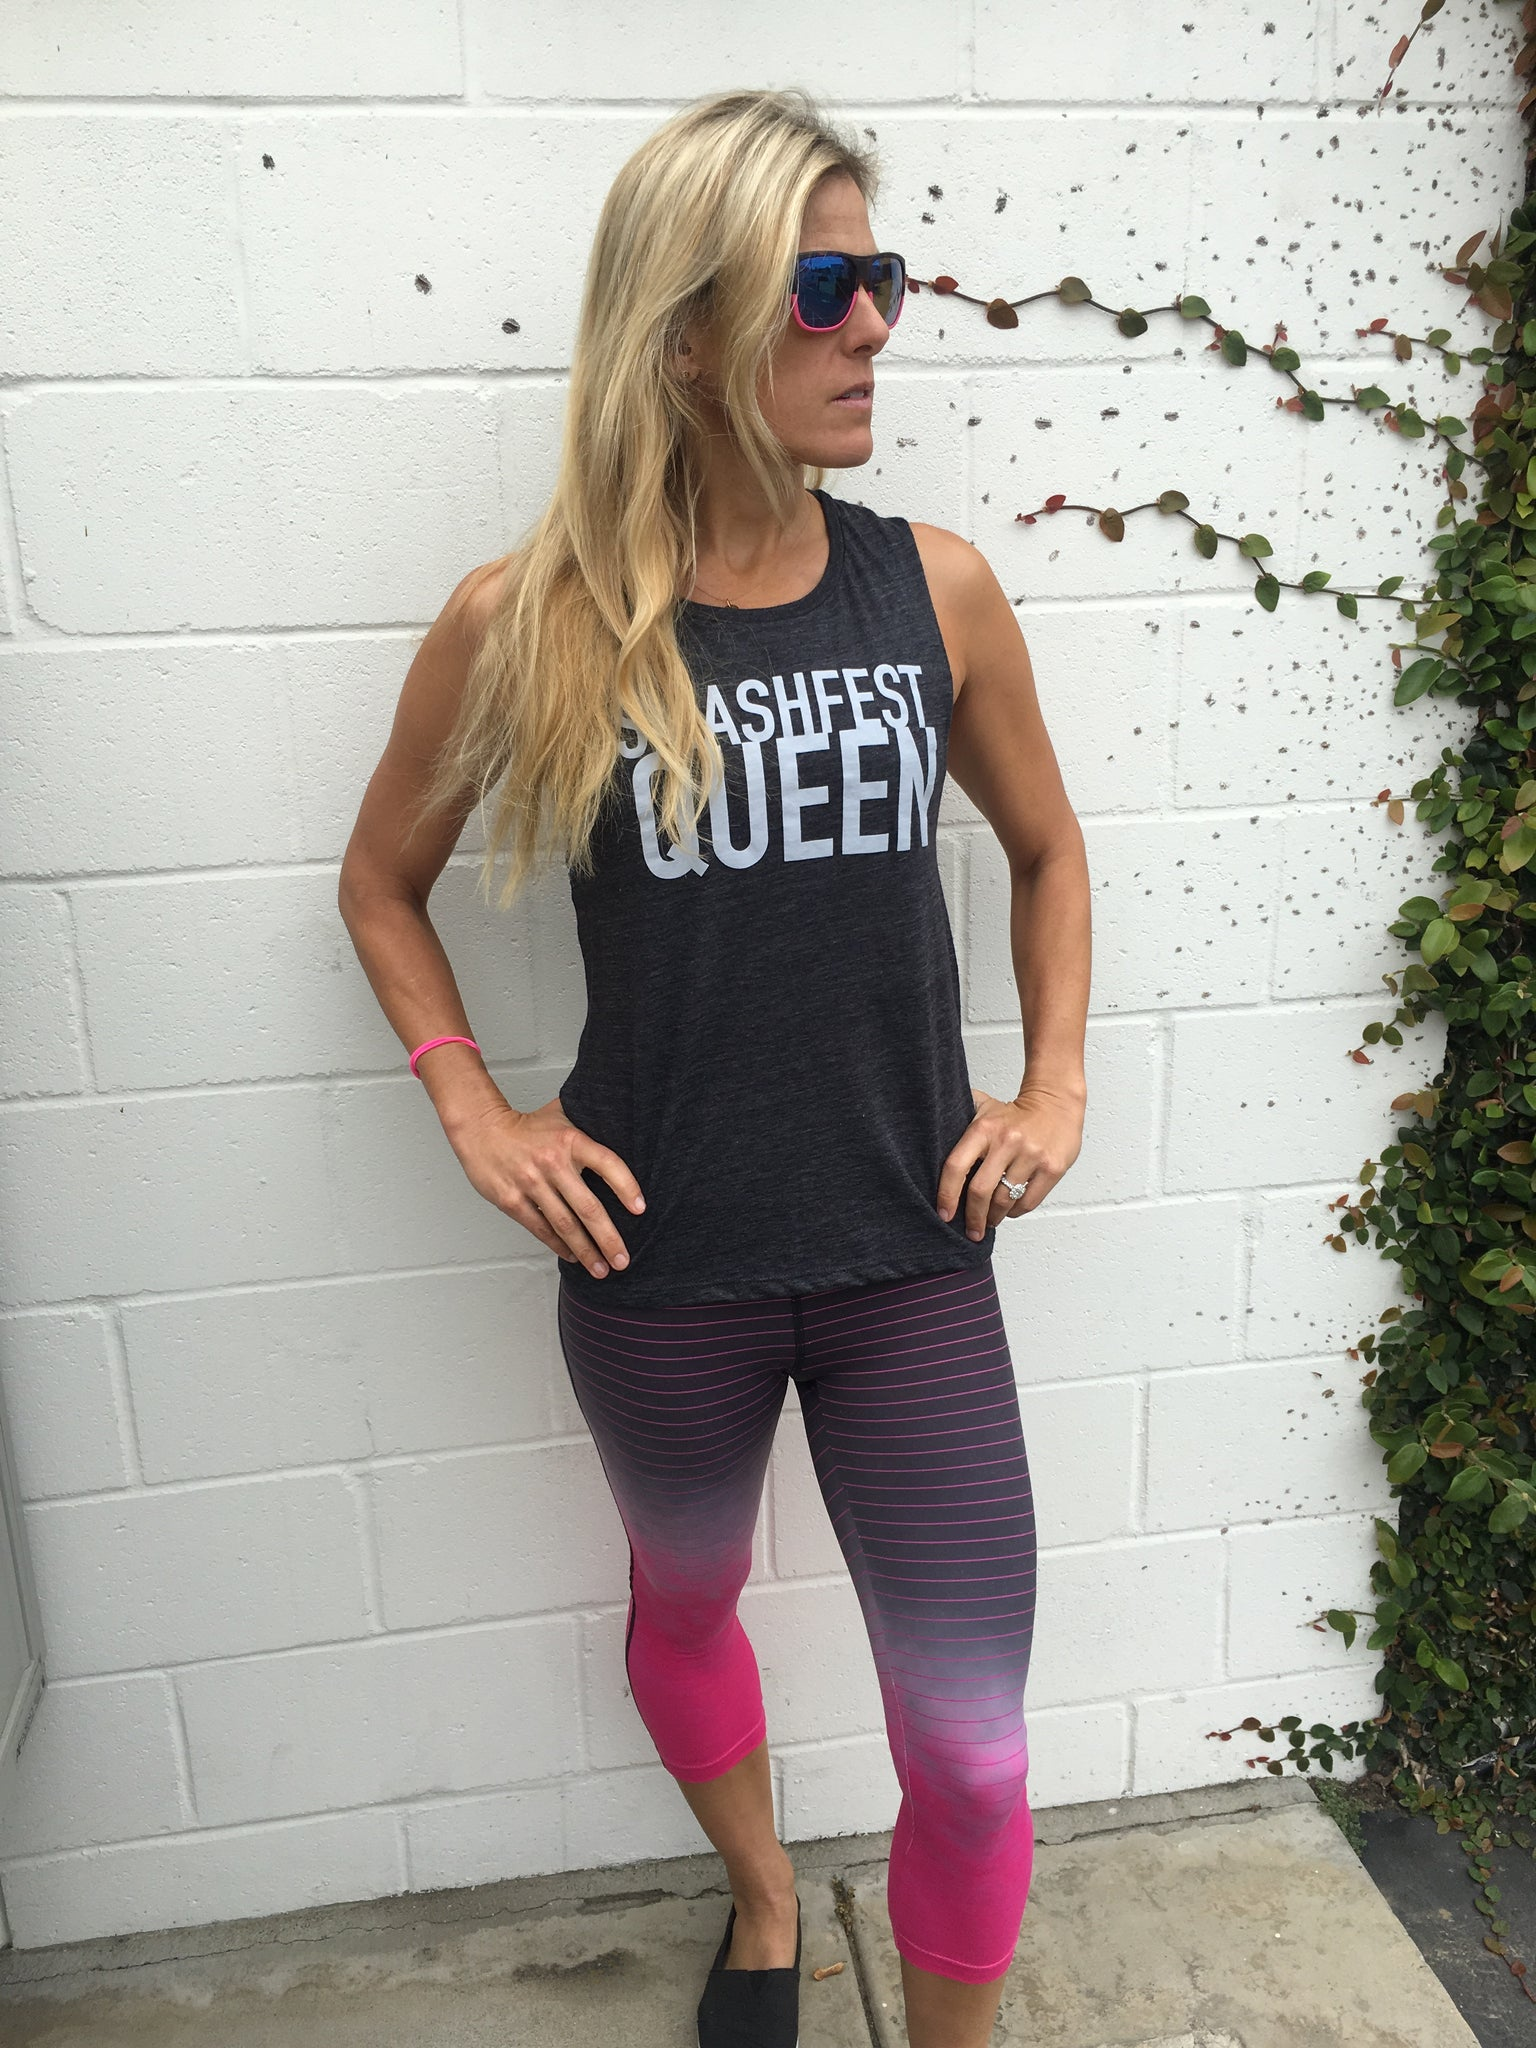 Smashfest Queen Muscle Tank- Charcoal